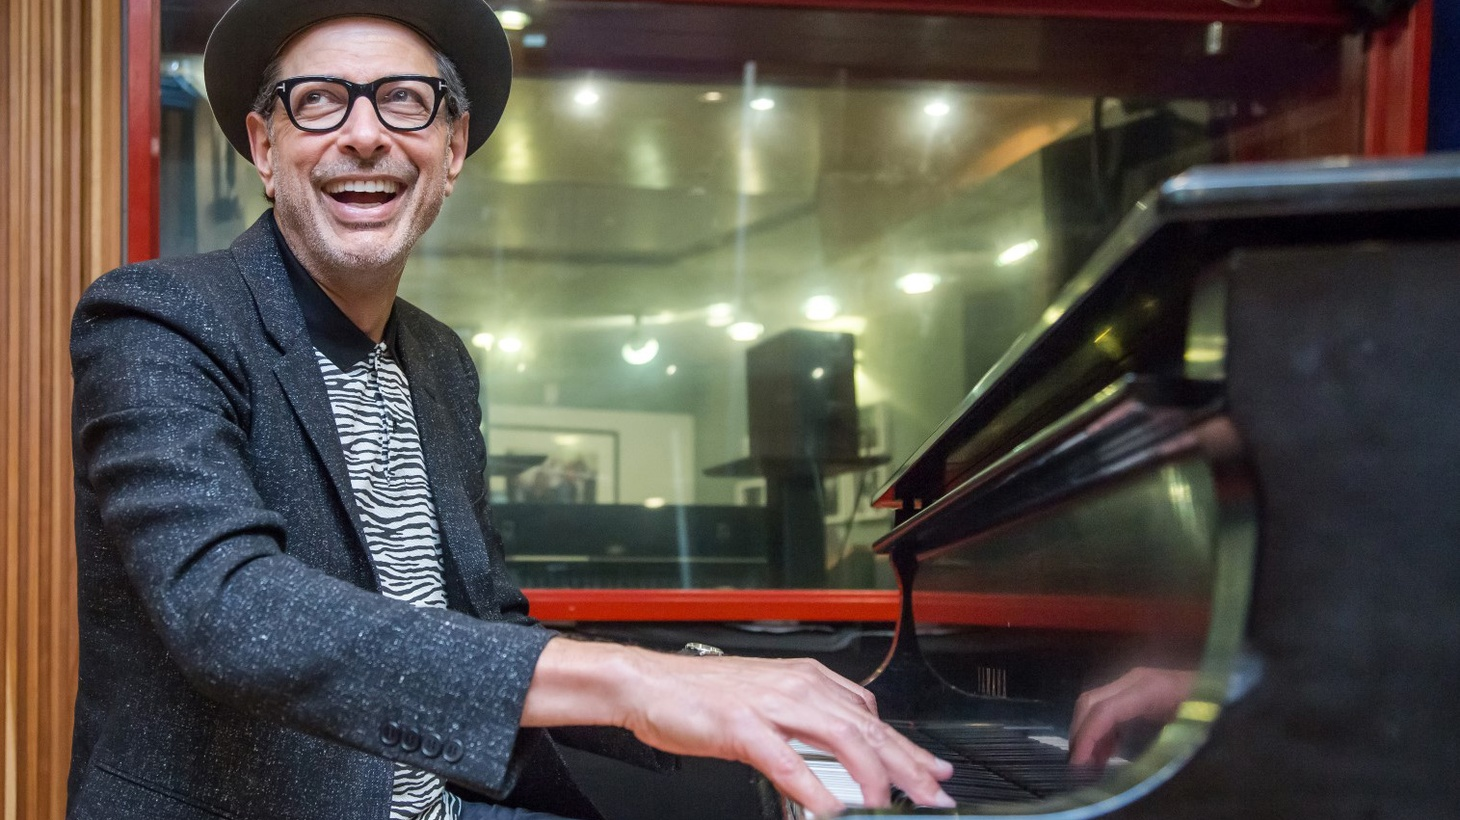 Off screen, beloved actor Jeff Goldblum is as offbeat, quirky and charming as some of the characters he plays. In his Guest DJ set, he talks about discovering his love for acting, how his dad turned him on to jazz and the Miles Davis song he uses to wake up in the morning.